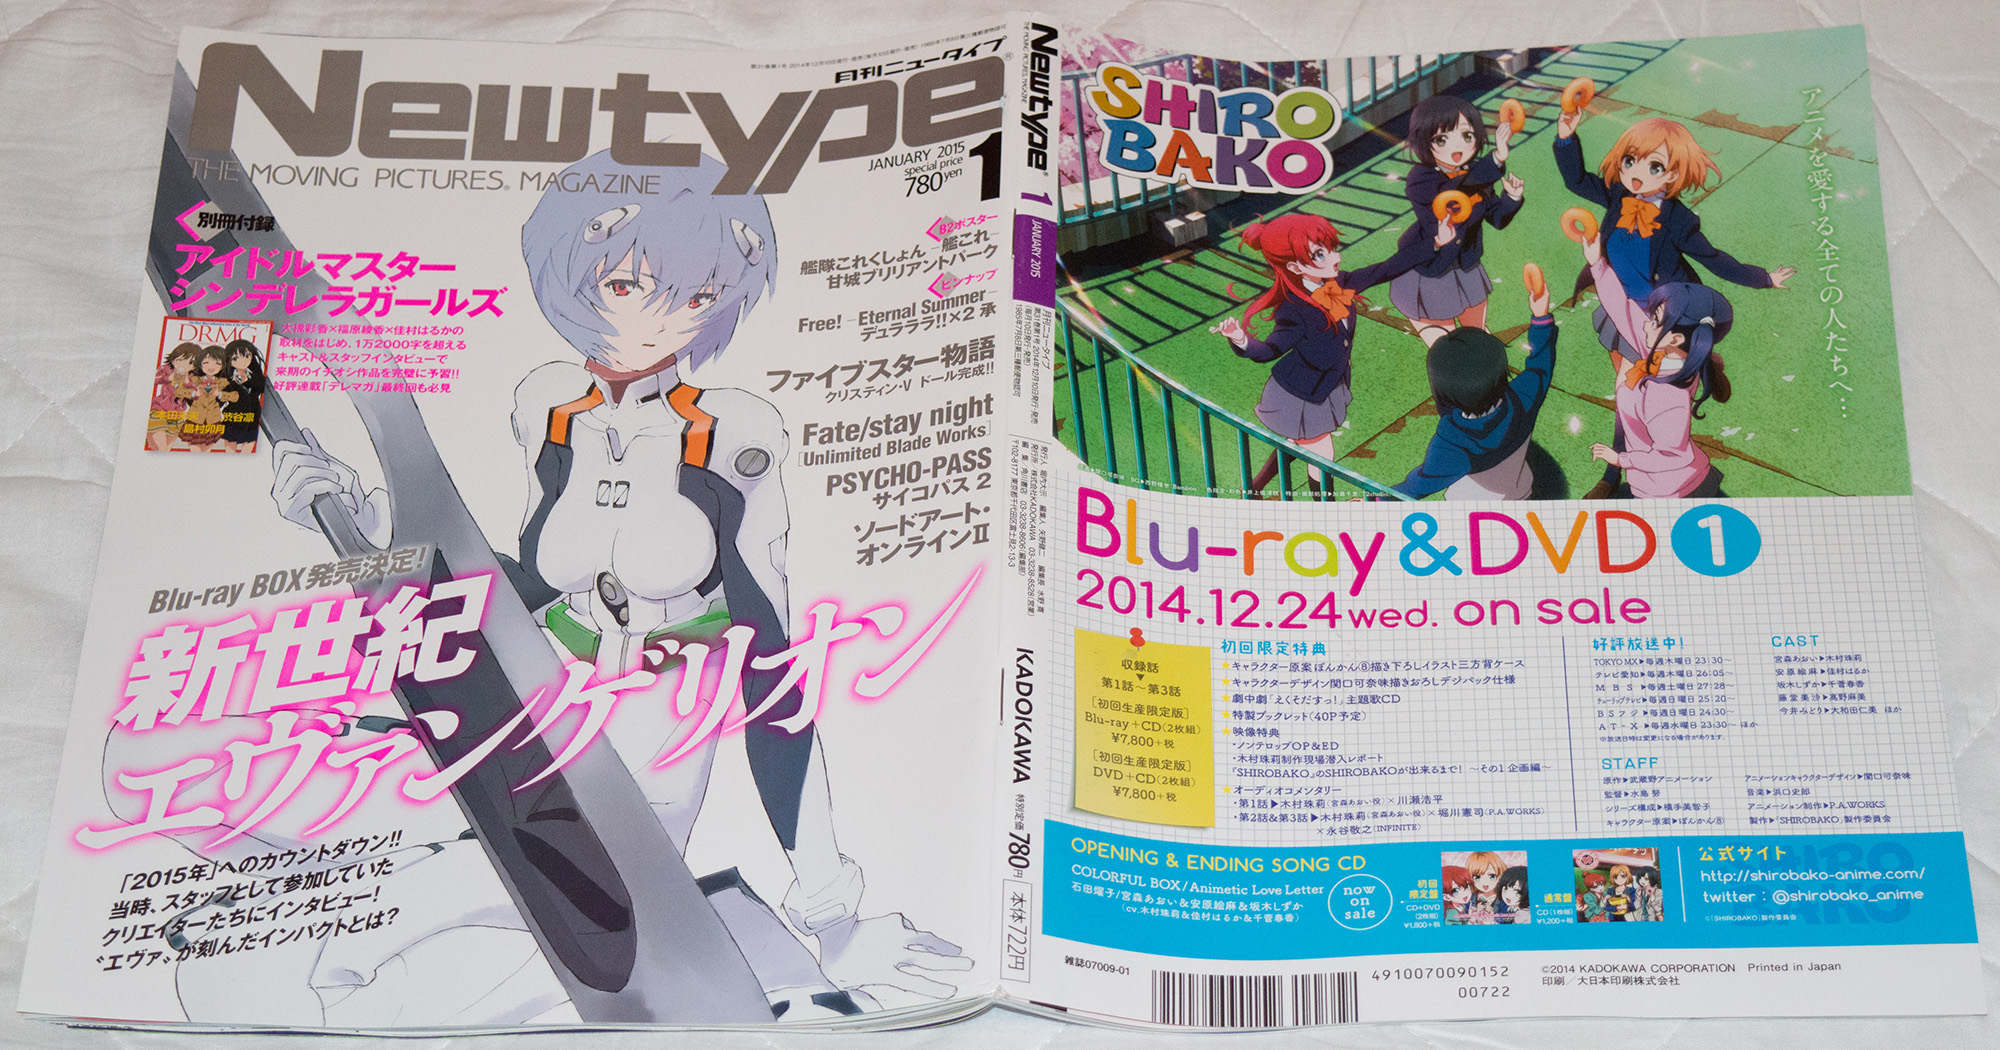 Haruhichan.com-Newtype-MAGAZINE-January-2015-anime-posters-cover-and-back.jpg